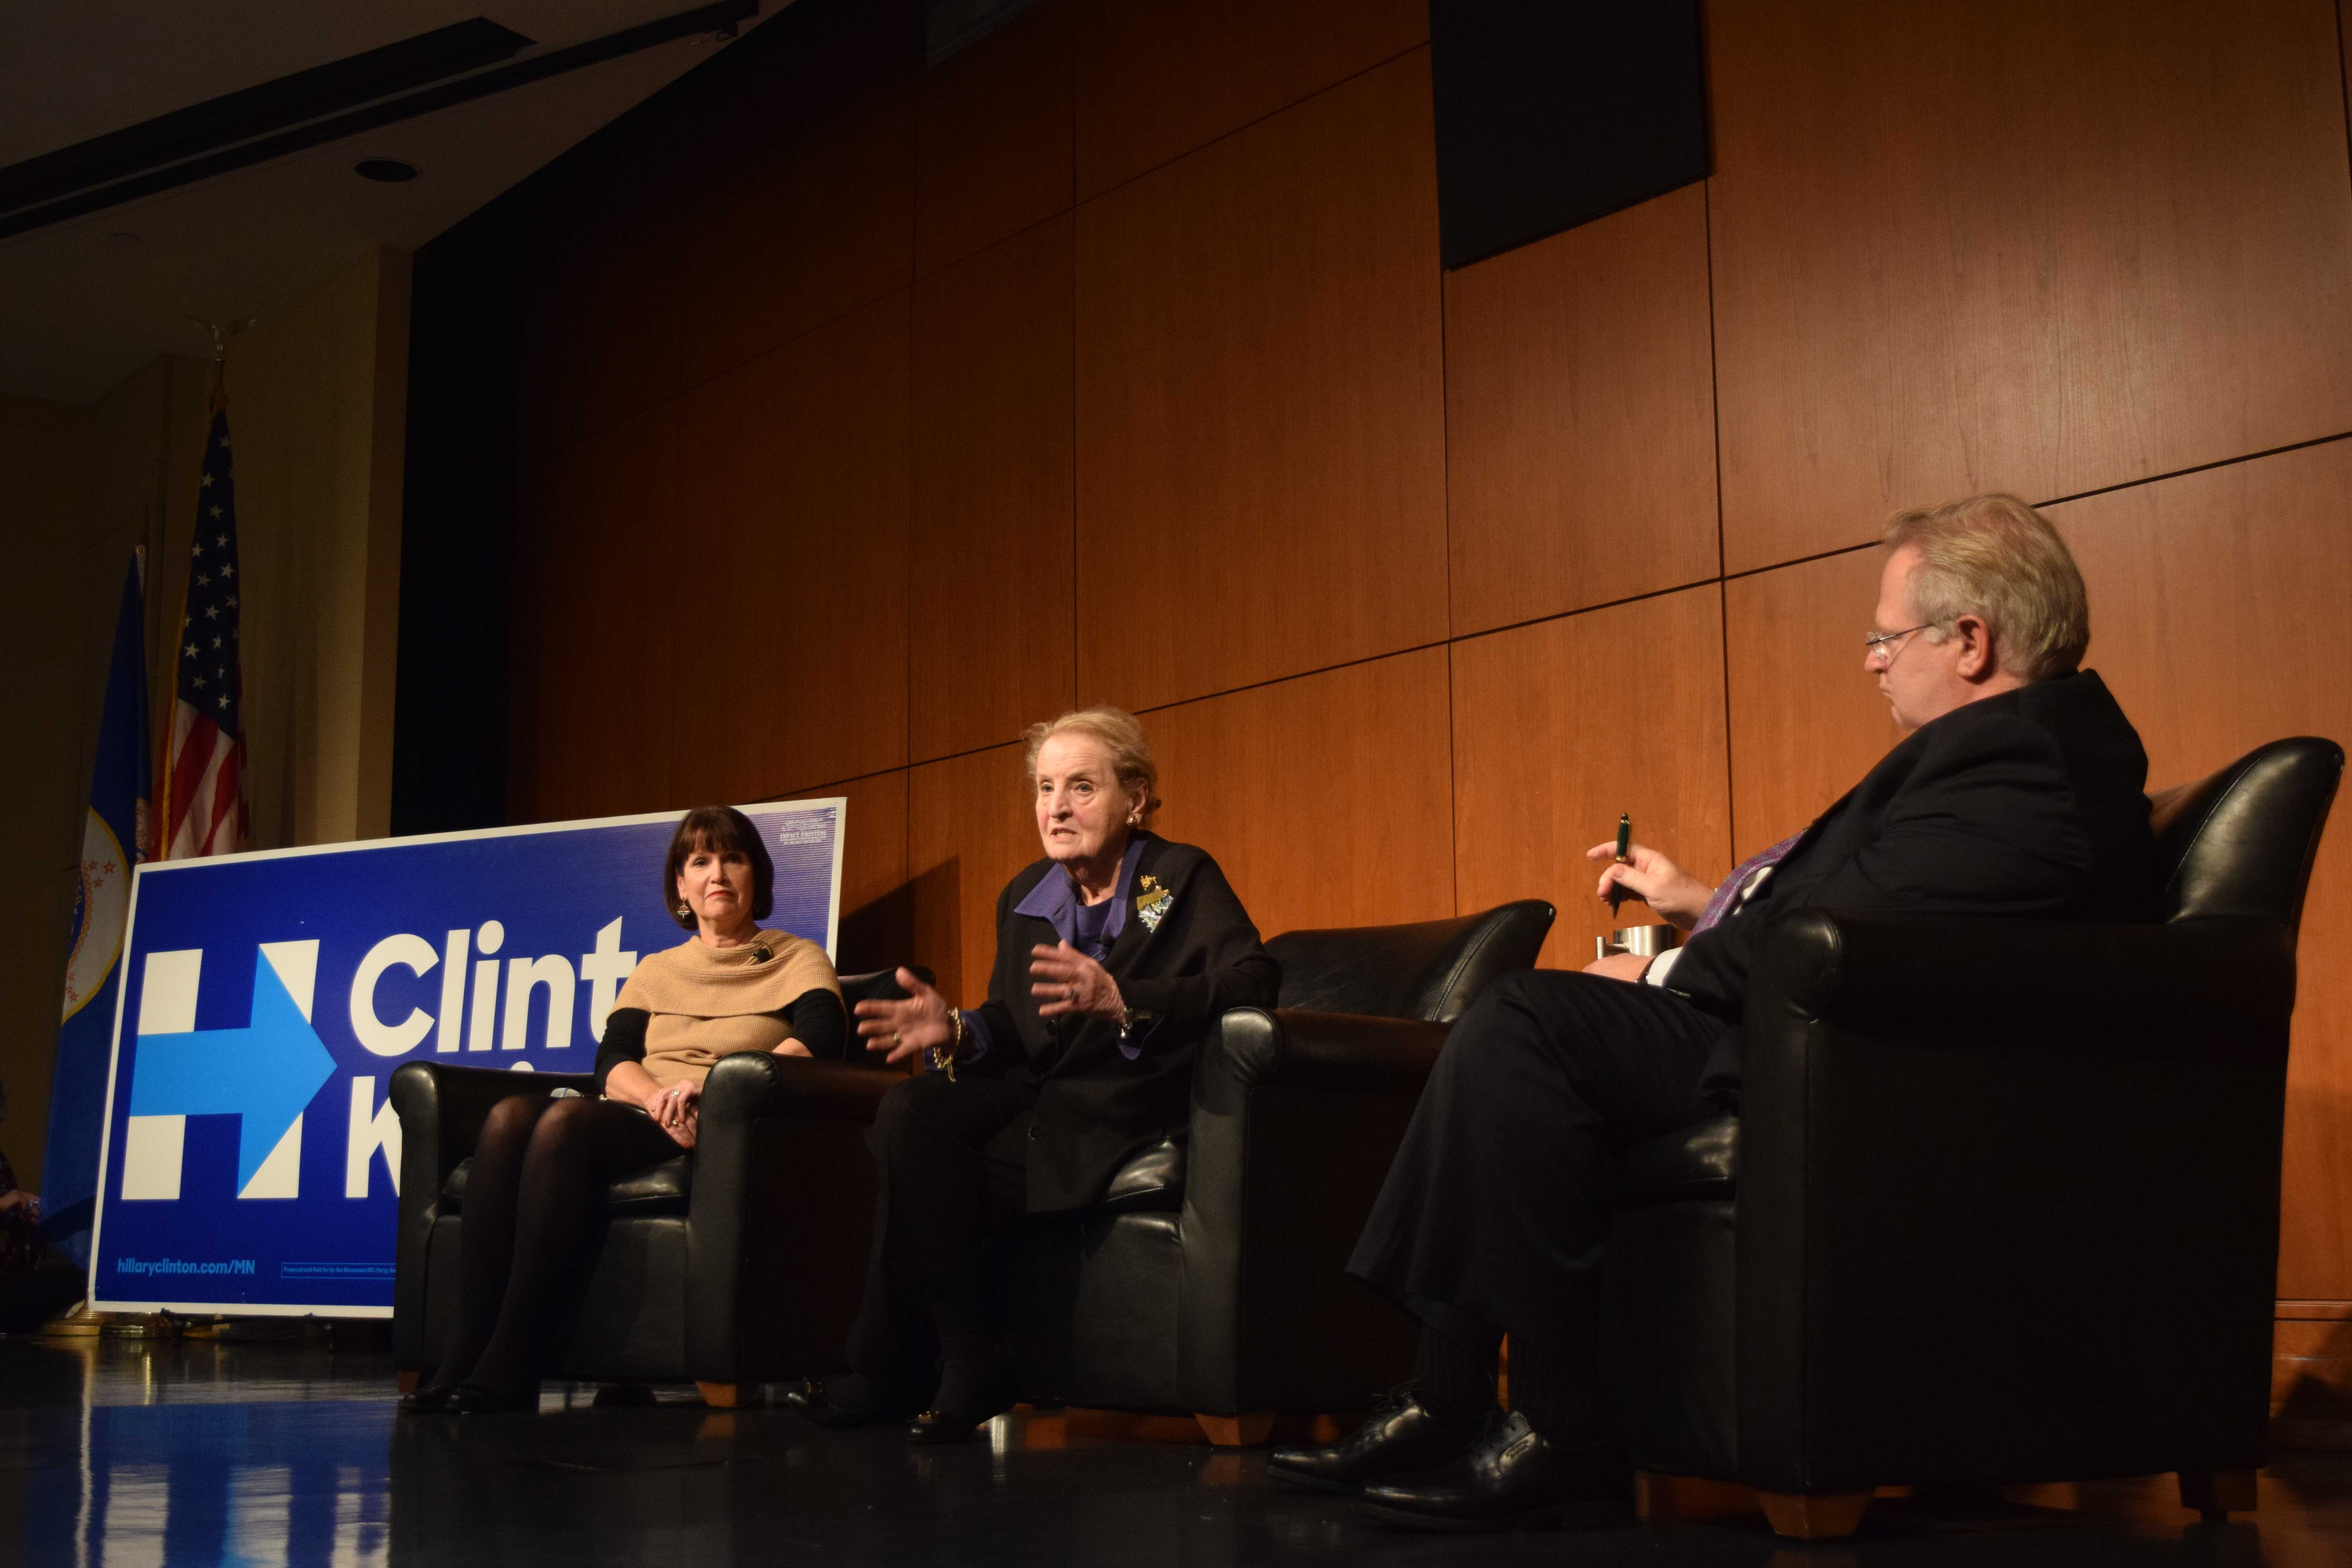 Former U.S. Secretary of State Madeleine Albright discussed national security with former U.S. Assistant Secretary of State Eric Schwartz and Minnesota Representative Betty McCollum at a roundtable discussion on Tuesday, October 18. Photo by Maddie Jaffe '17.